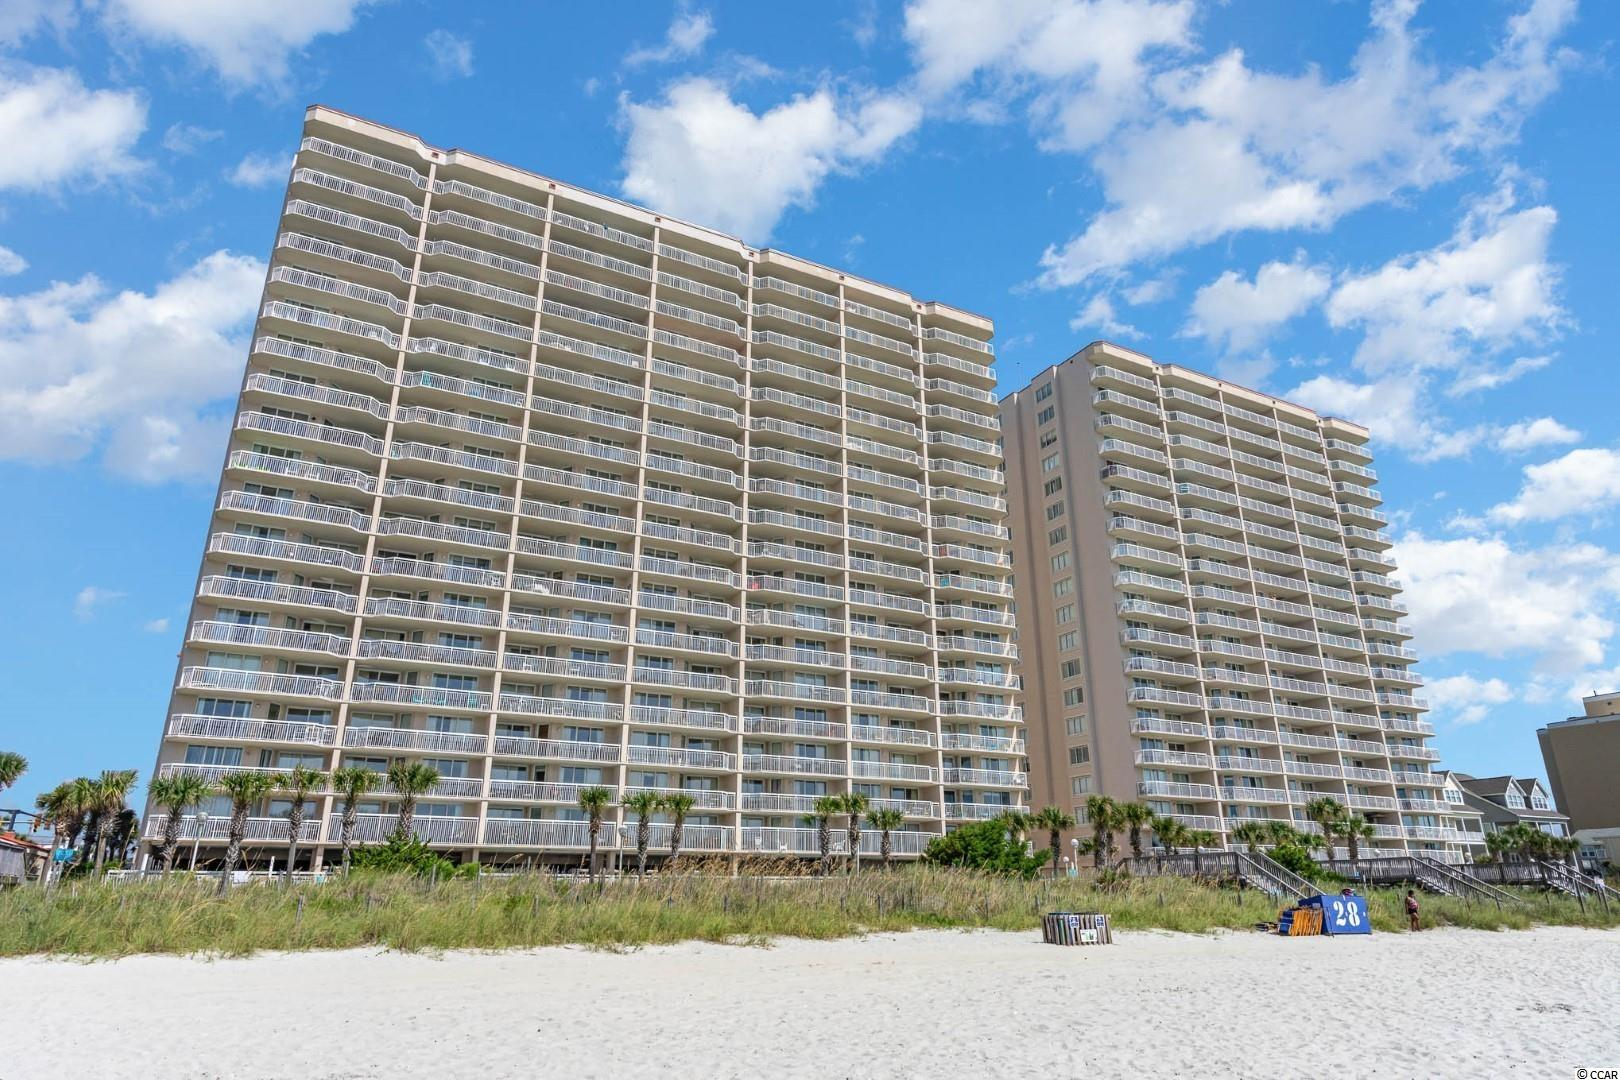 Awesome breathtaking views of the Atlantic from all living areas and the master bedroom of this 12th floor direct oceanfront end unit condo in the Crescent Beach section of North Myrtle Beach. Enjoy your morning coffee and watch the sun rise from the expansive balcony that runs the entire with of the condo and has access from either the living area and master suite. If you vacation with family or friends, this four bedroom three bath condo with over 1,600 ht. sq. ft. is sure to accommodate your entire group.  Master features two closets one of which is walk-in ~ double sink vanity ~ walk-in shower ~ and a bubbly jetted tub. Foyer, kitchen and all wet areas have ceramic tile flooring. Recent upgrades include washer/ dryer ~ All new stainless steel GE kitchen appliances ~ Refrigerator has water and Ice dispenser and Master bedroom mattress. You have a private exterior attached storage closet for your beach chairs and toys .Tastefully decorated ~  Turn key and ready for you to make this your new beach address. Crescent Shores offers indoor/ outdoor pools ~ Lazy River and work out facilities .The building had roof replaced in 2020. Walk next door to Molly Darcey's for a beverage or lunch. Ice Cream shop is just around the corner. Great location~ just minutes to Barefoot Landing and other fantastic attractions the Grand Strand has to offer. Square footage is approximate and not guaranteed. Buyers responsible for verification.